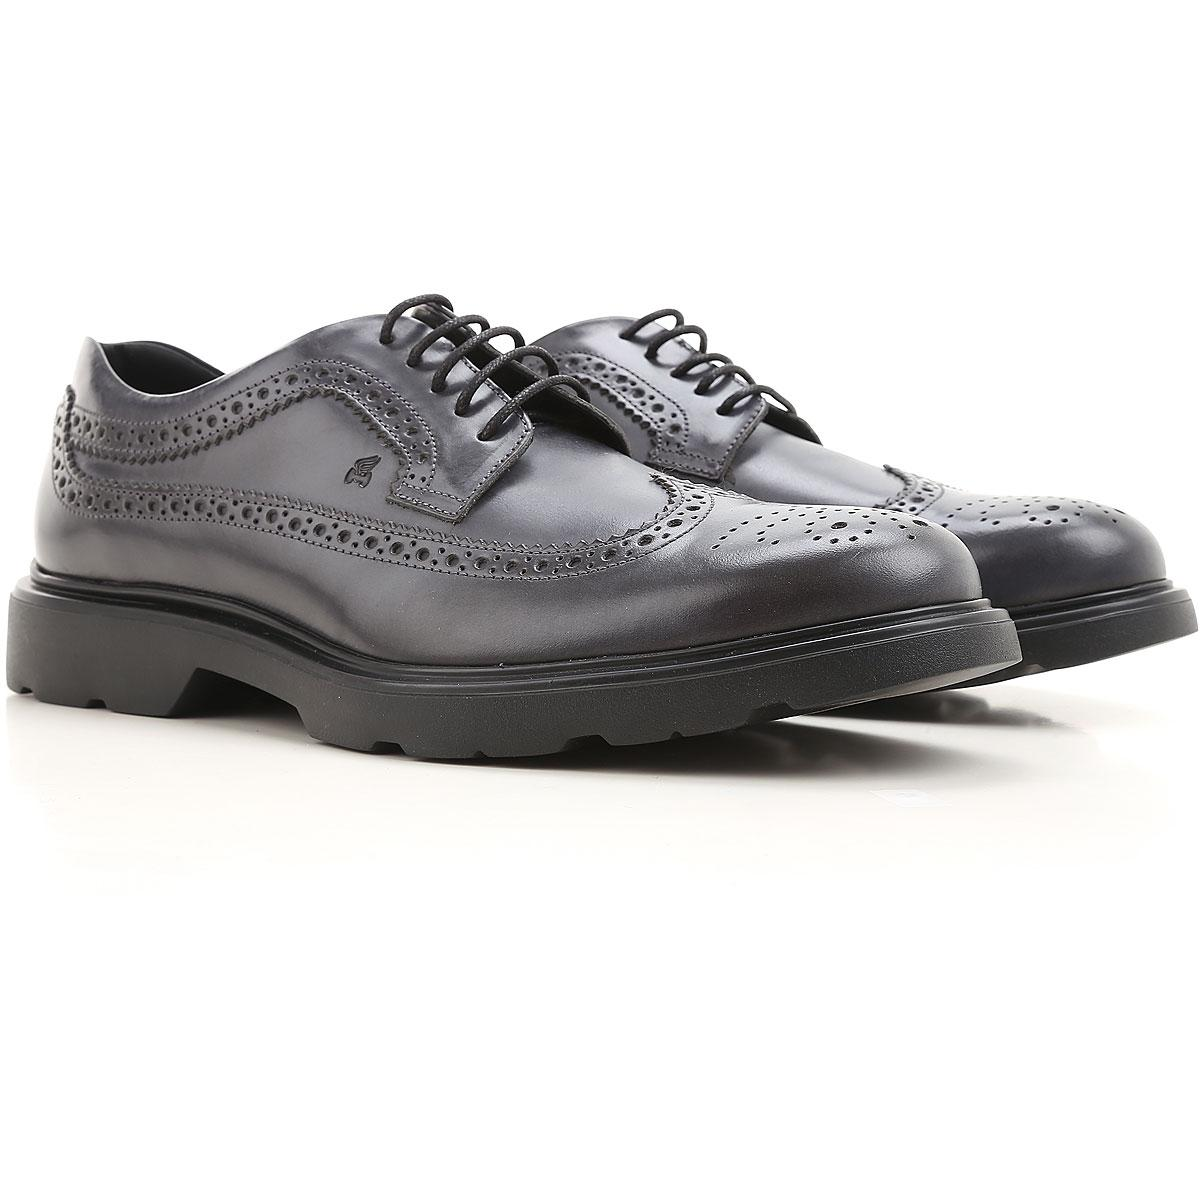 Lace Up Shoes for Men Oxfords, Derbies and Brogues On Sale, Dark Night Blue, Leather, 2017, 8 Hogan